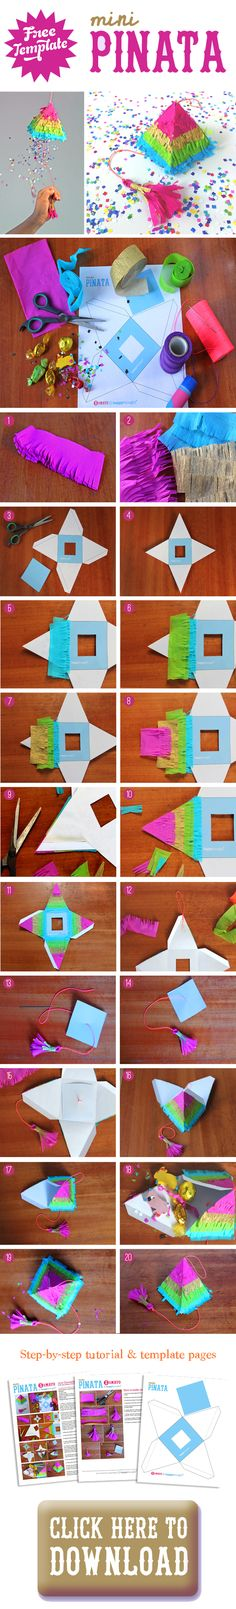 Make a Pinata to fill with goodies is easy and fun. Easy quick DIY video tutorial for a draw string pinata! Assemble cute mini rainbow pinatas for fiestas! Cute Crafts, Diy And Crafts, Crafts For Kids, Paper Crafts, Rainbow Pinata, Cumpleaños Diy, Easy Diy, Ideias Diy, Craft Tutorials